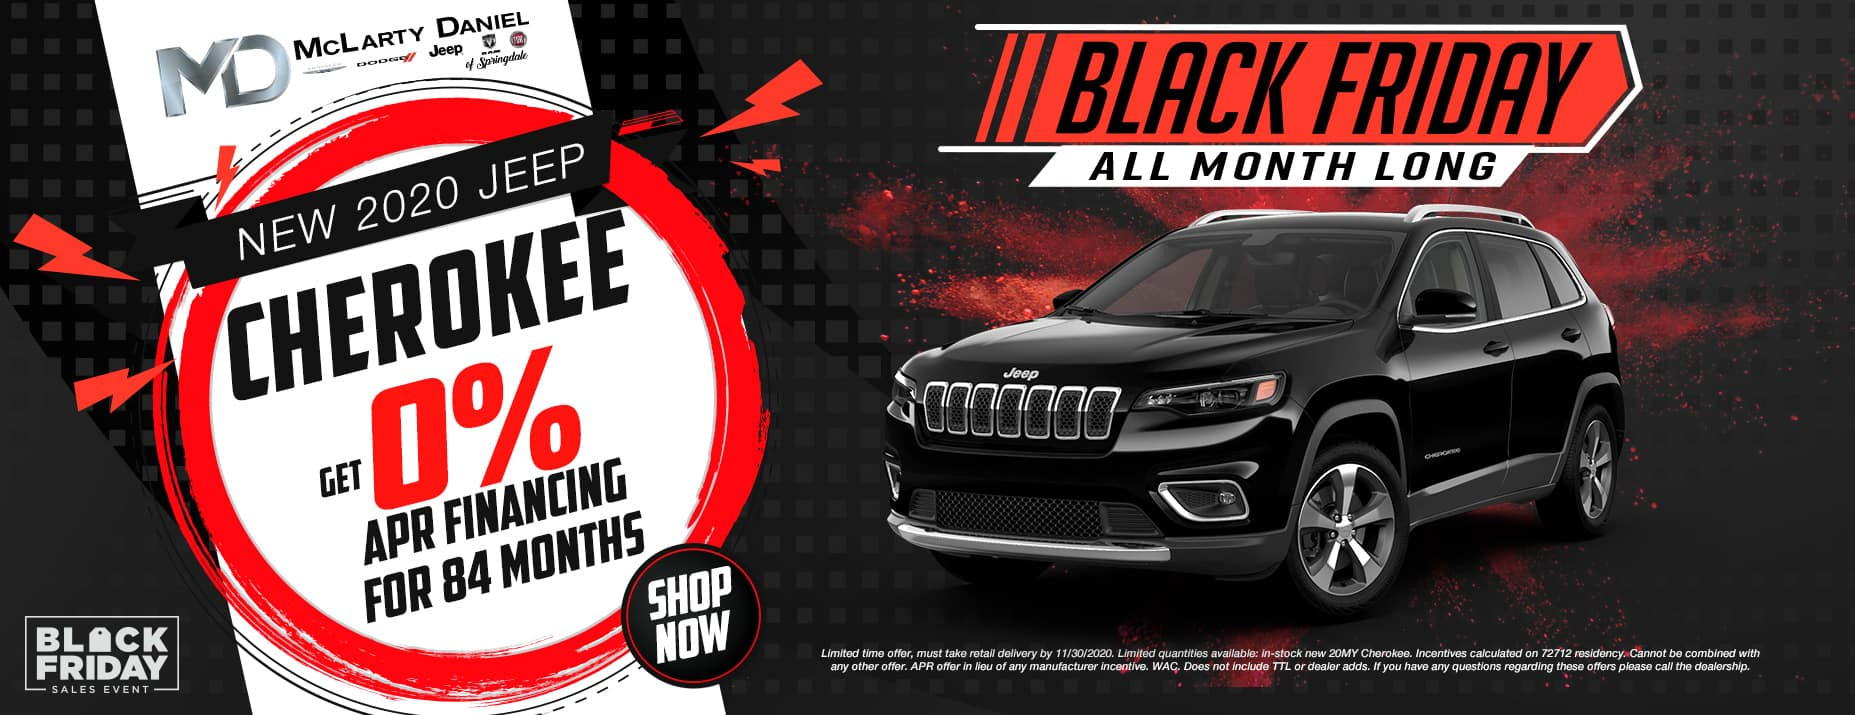 GET 0% FOR 84 MONTHS ON NEW CHEROKEE!